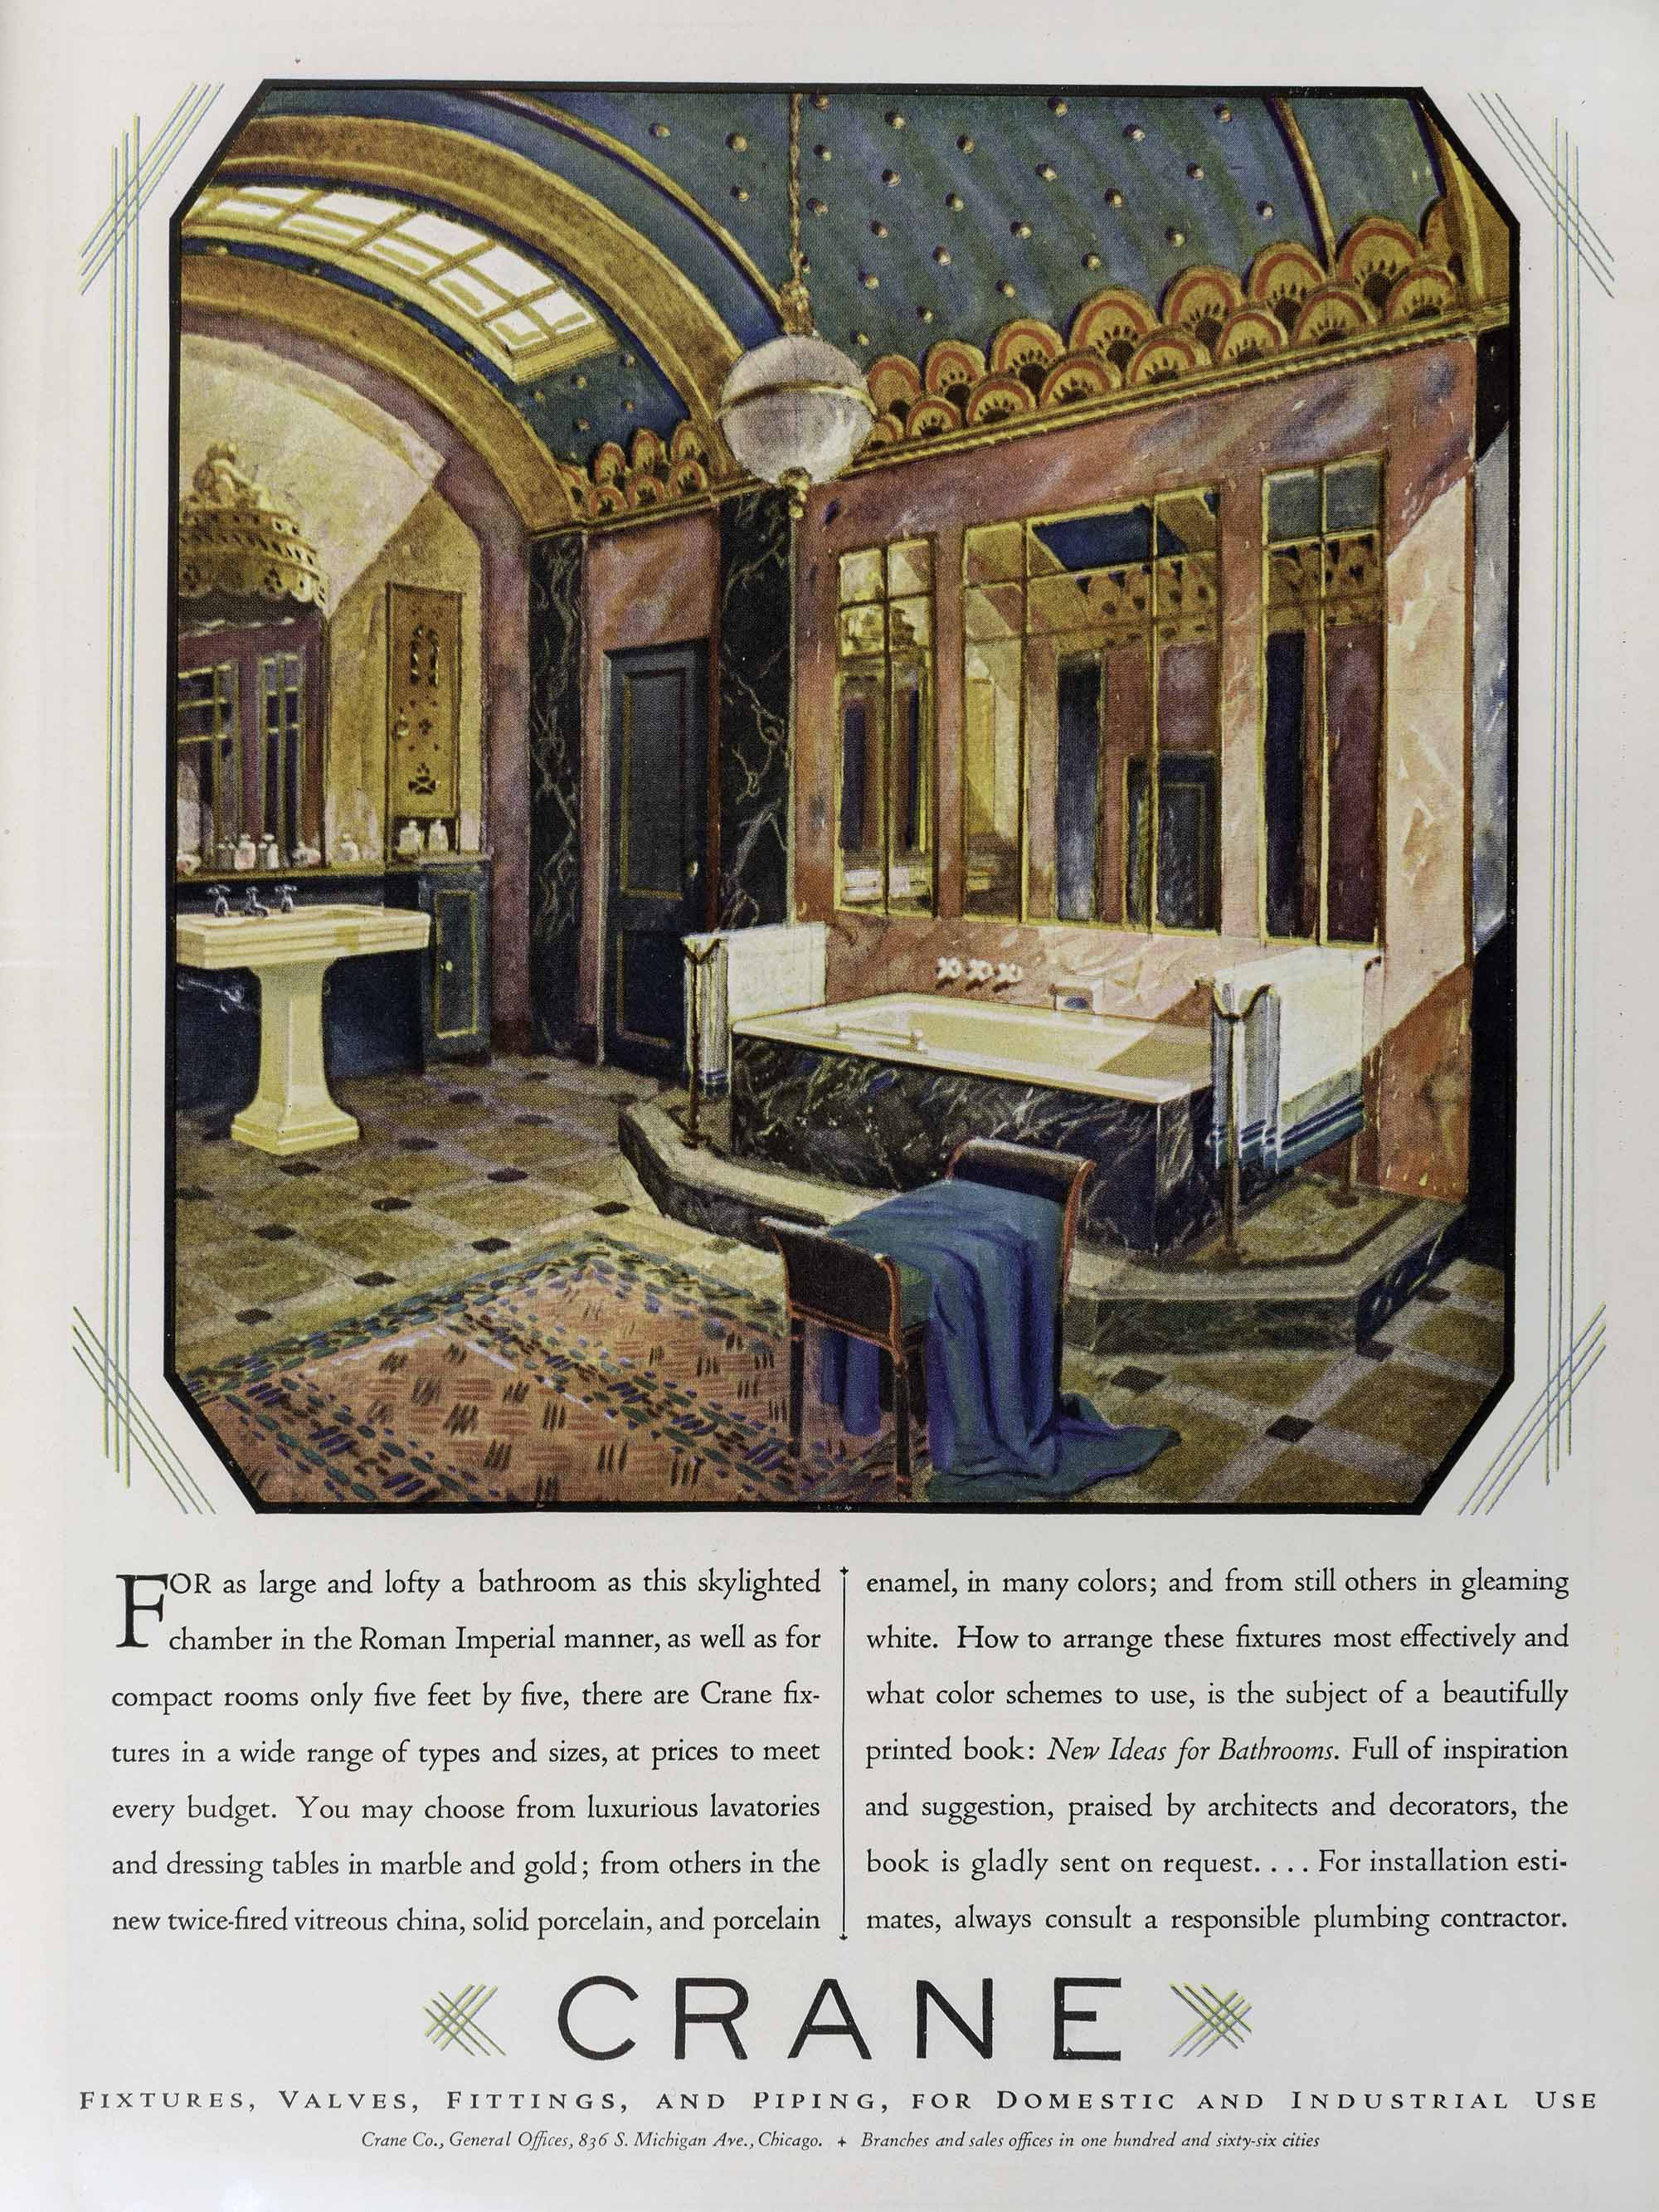 Crane bathroom advertisement, Courtesy Hagley Museum & Library